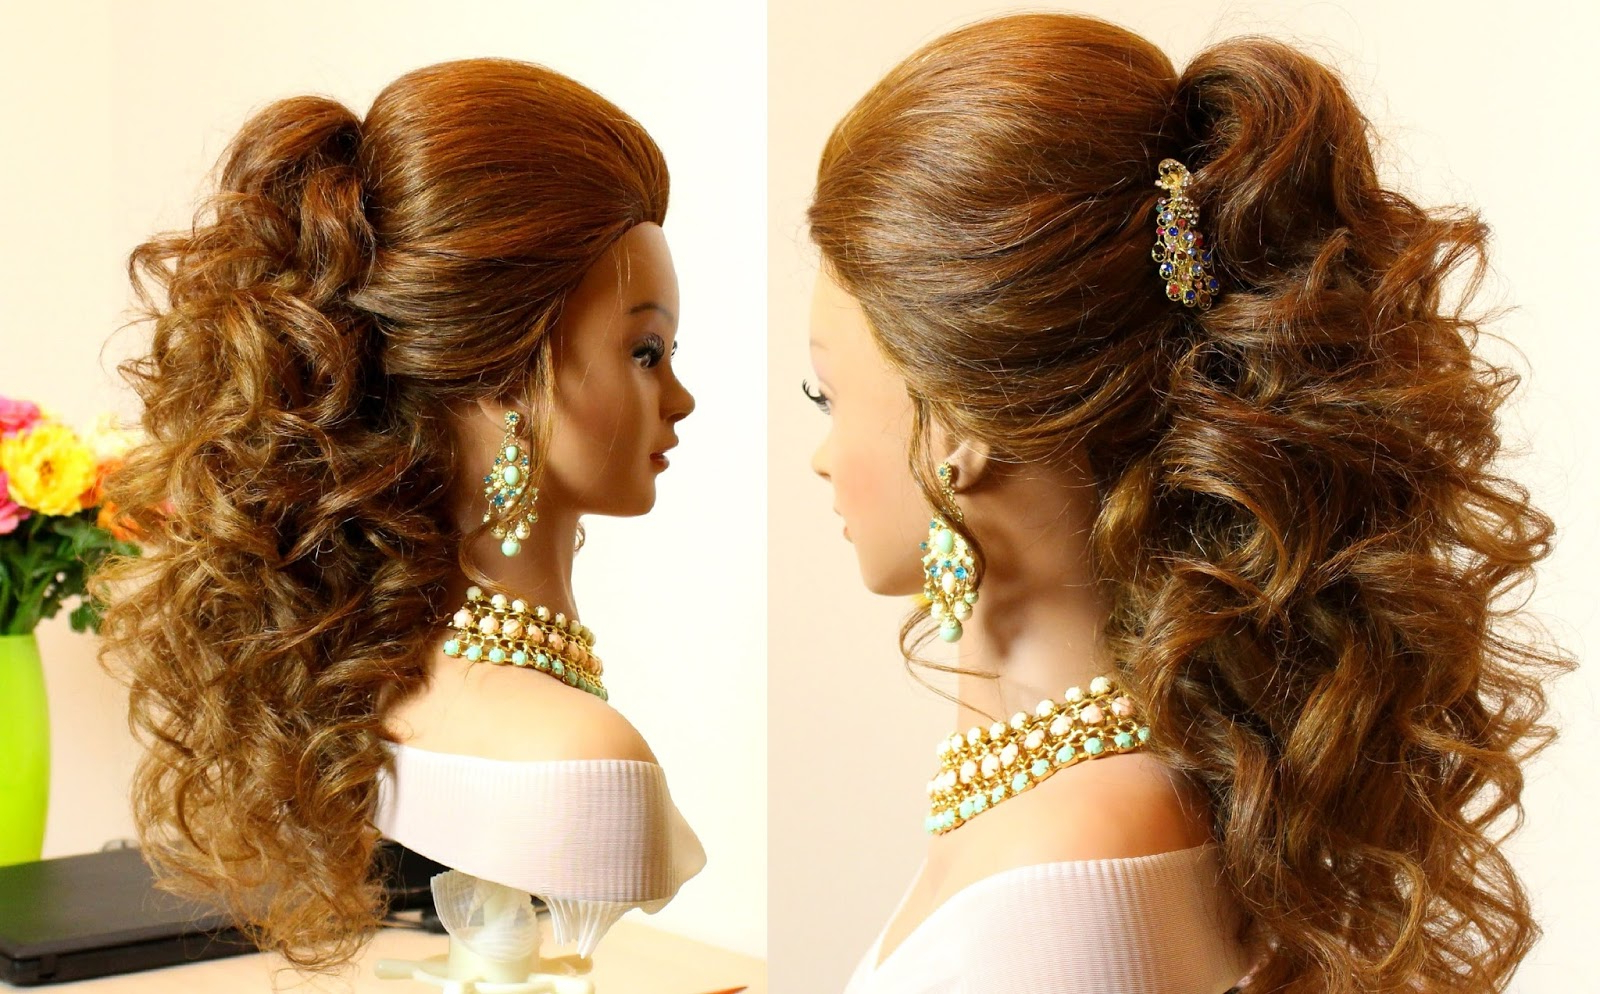 Hairstylo Pertaining To Famous Elegant Messy Updo Hairstyles On Curly Hair (View 19 of 20)